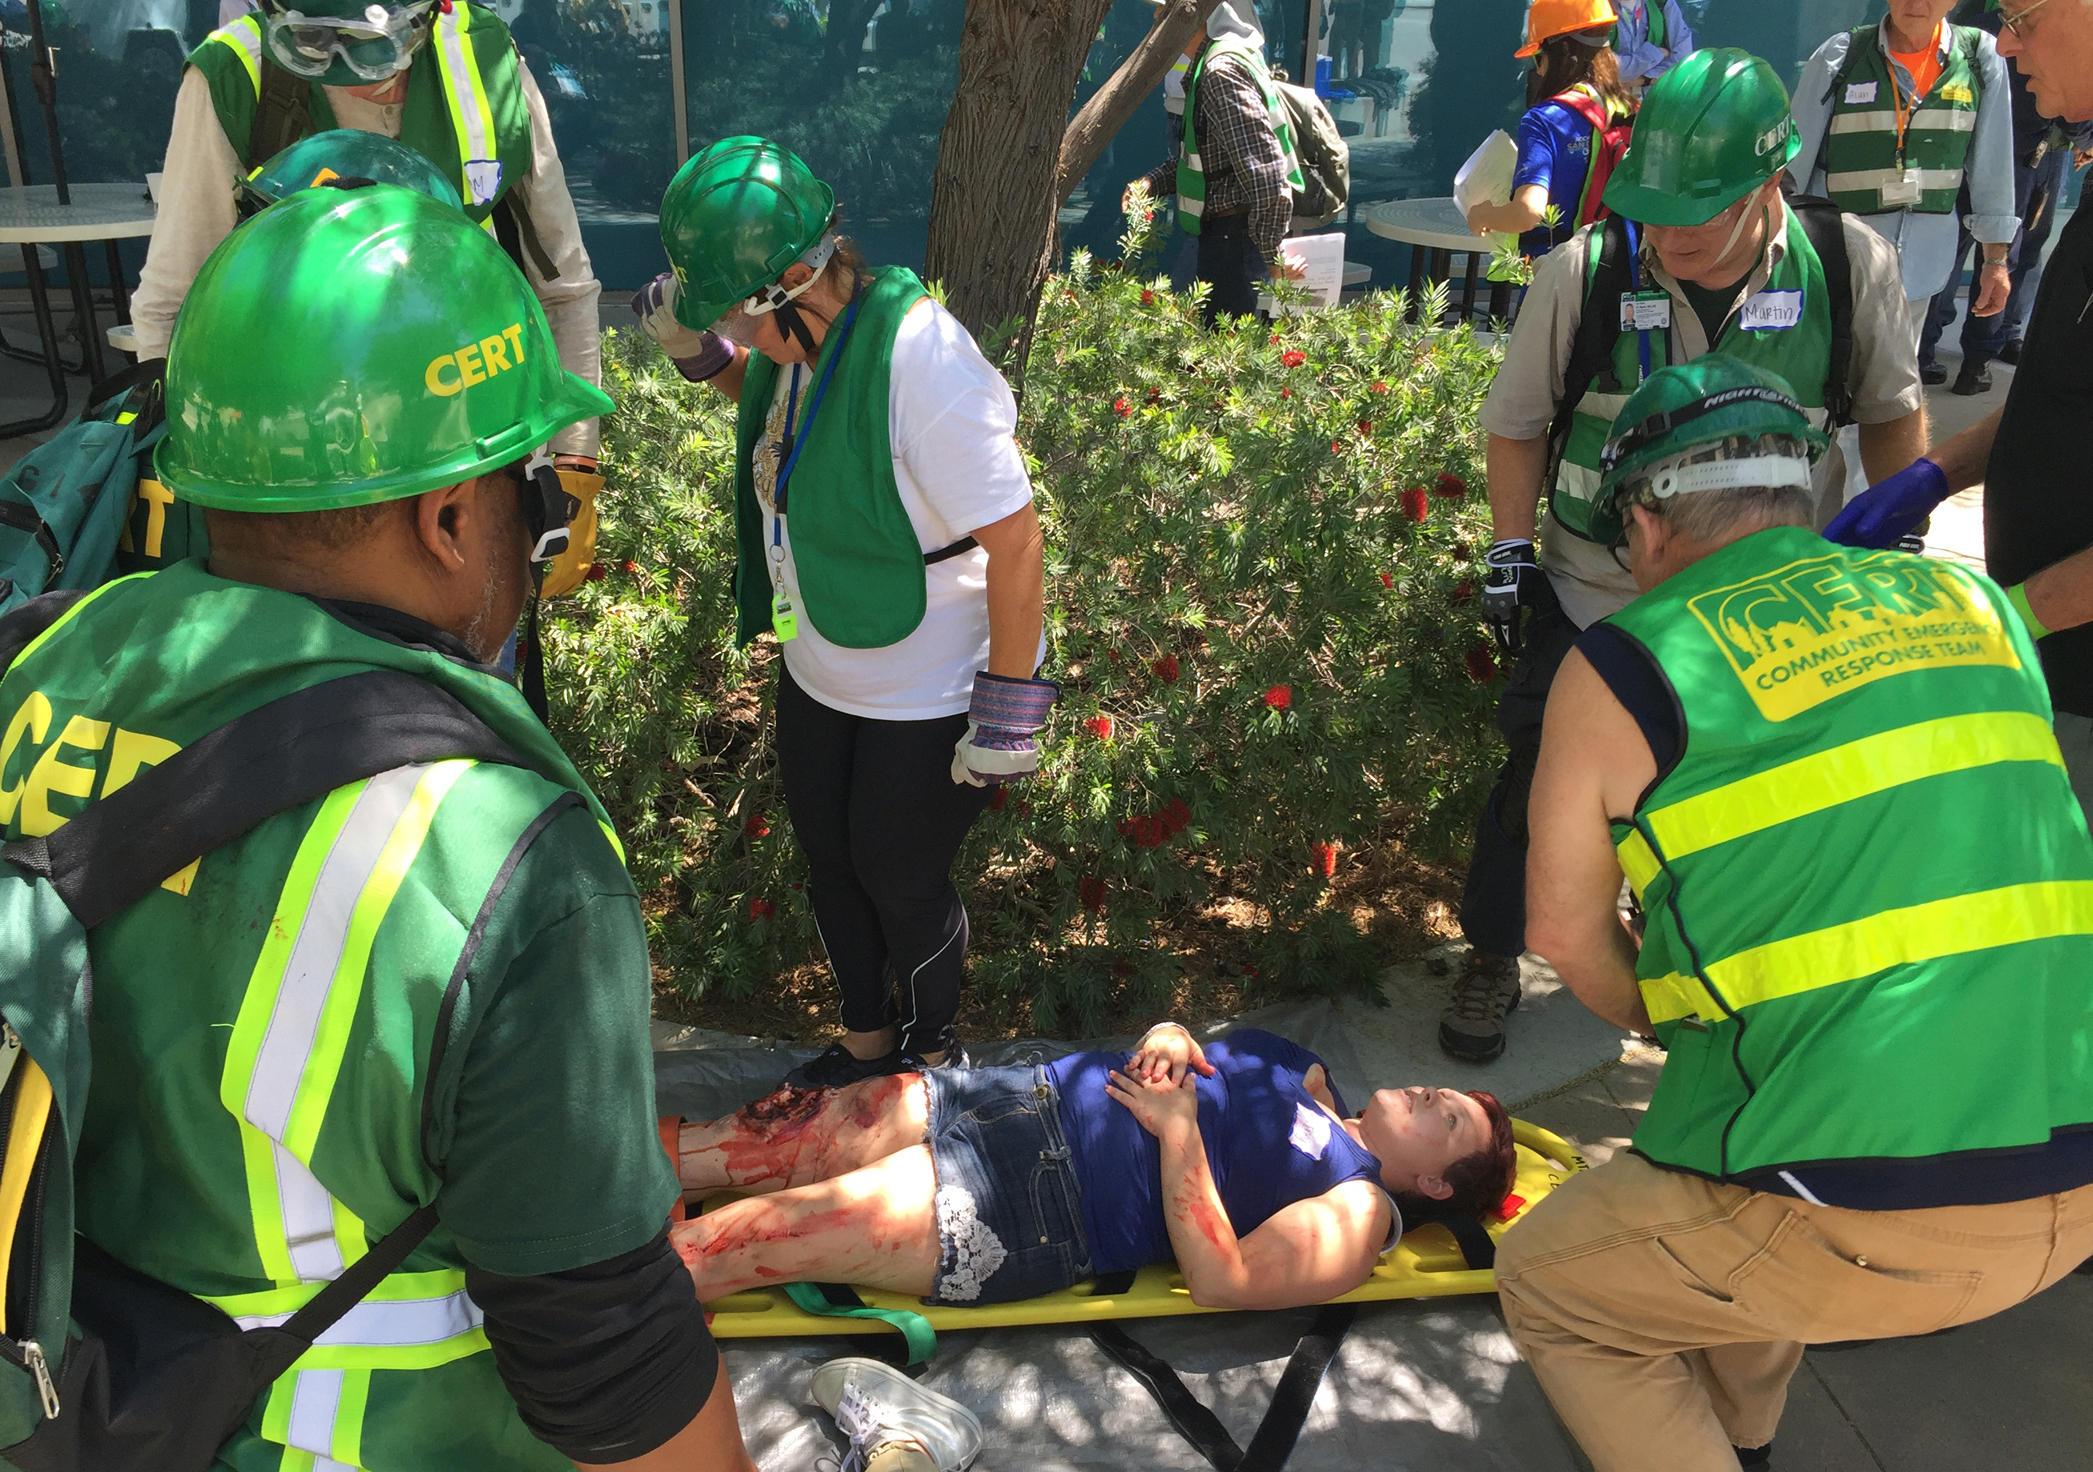 CERT members perform basic first aid on mock victims carried out to a triage center during a regional emergency response drill.